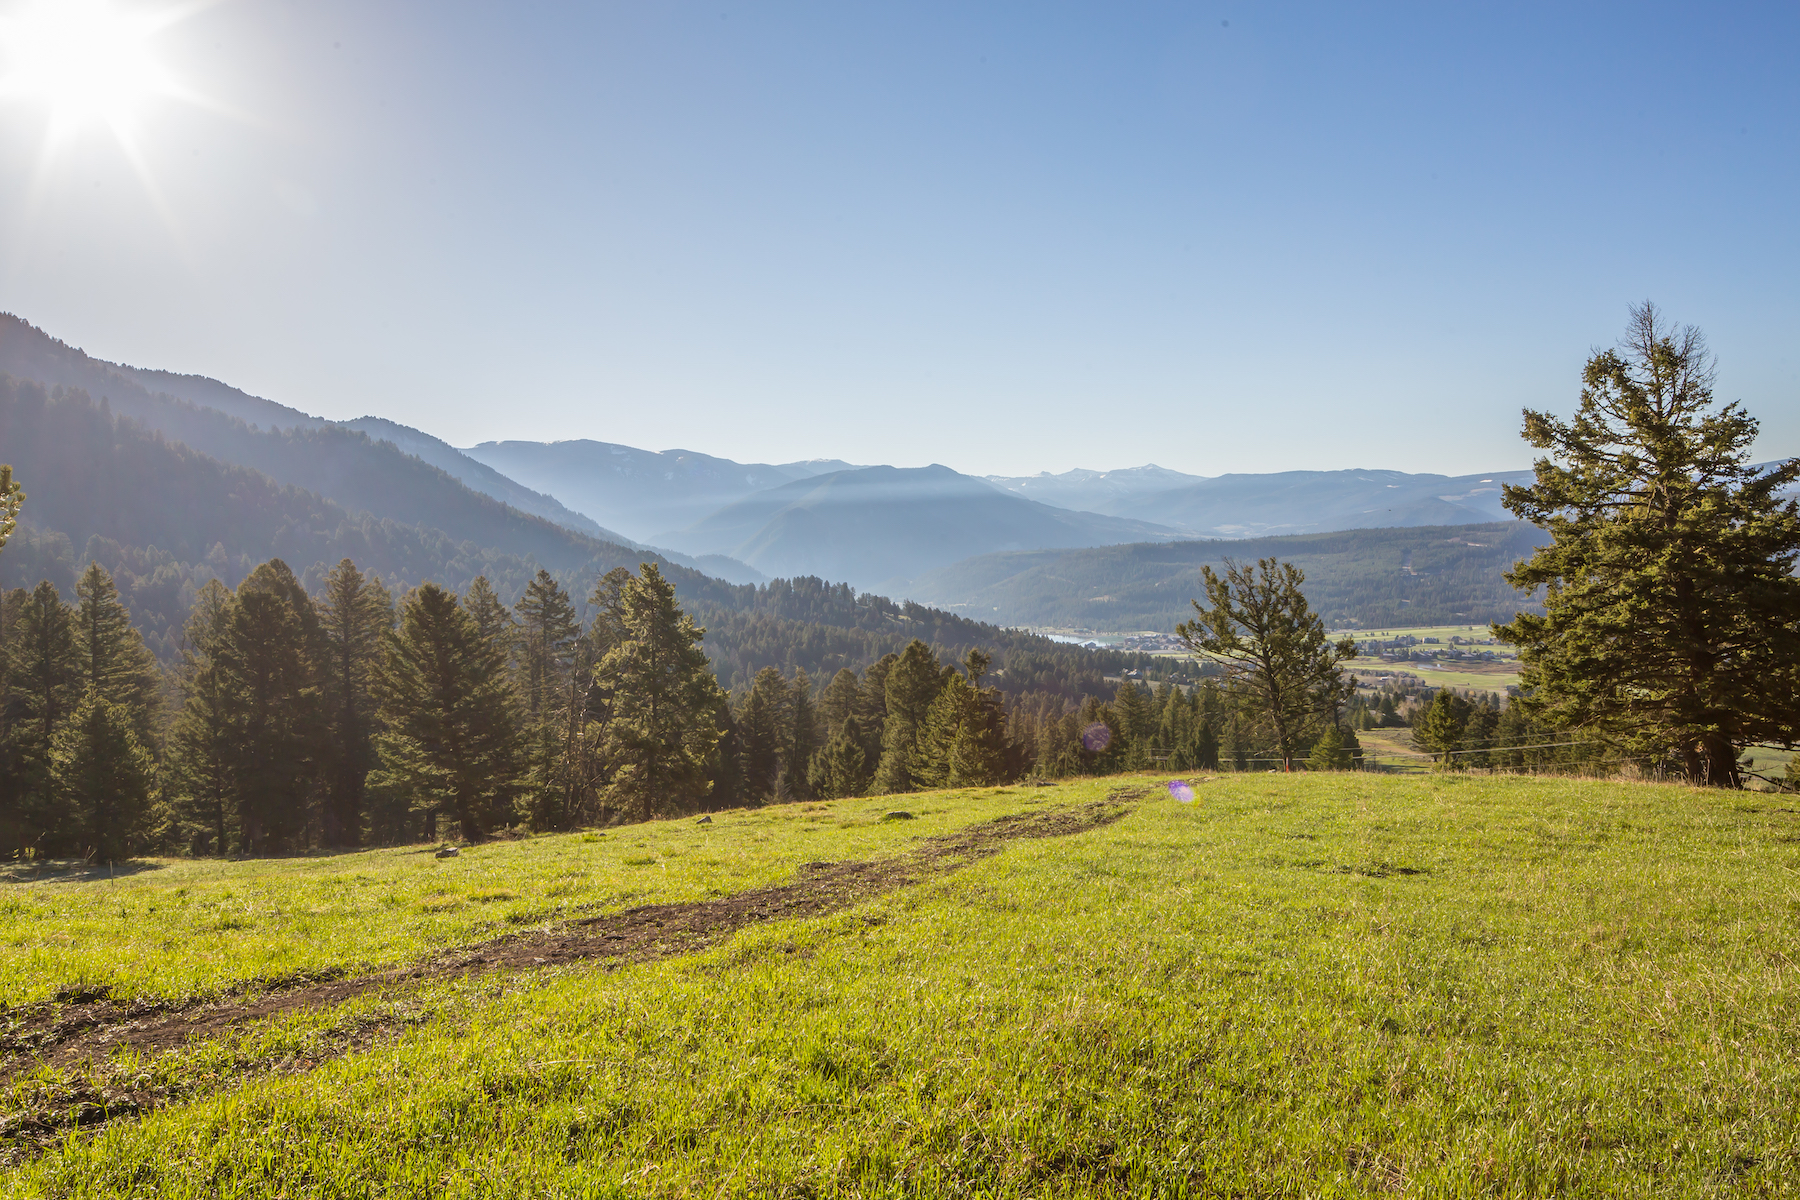 Land for Sale at Upper Chief Joseph Lot 3B-1 Upper Chief Joseph Tr. Lot 3B-1 Big Sky, Montana, 59716 United States